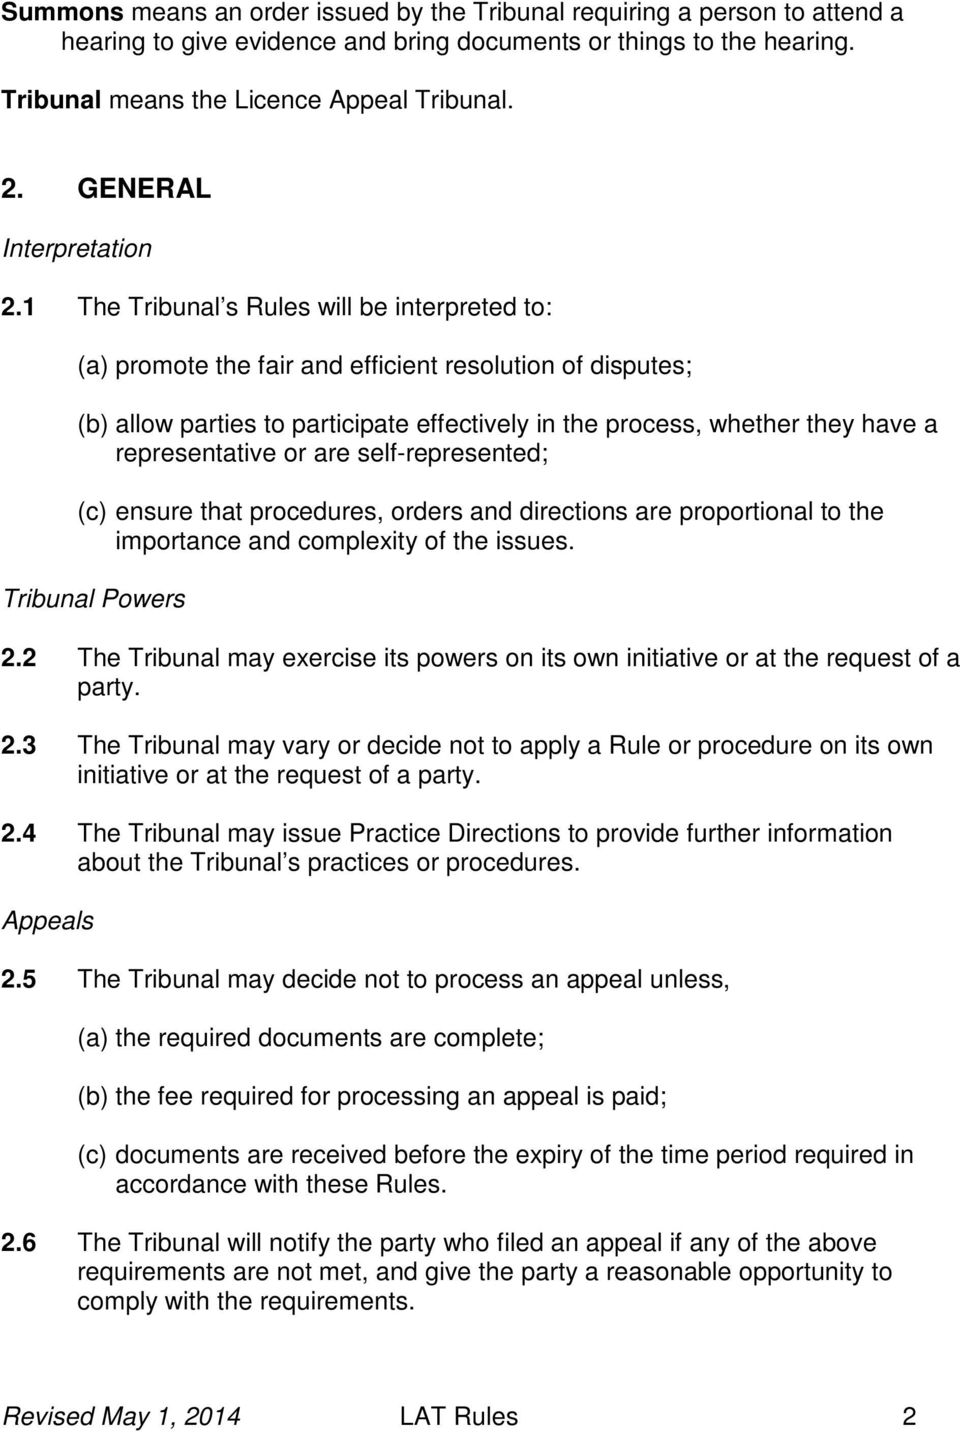 1 The Tribunal s Rules will be interpreted to: (a) promote the fair and efficient resolution of disputes; (b) allow parties to participate effectively in the process, whether they have a